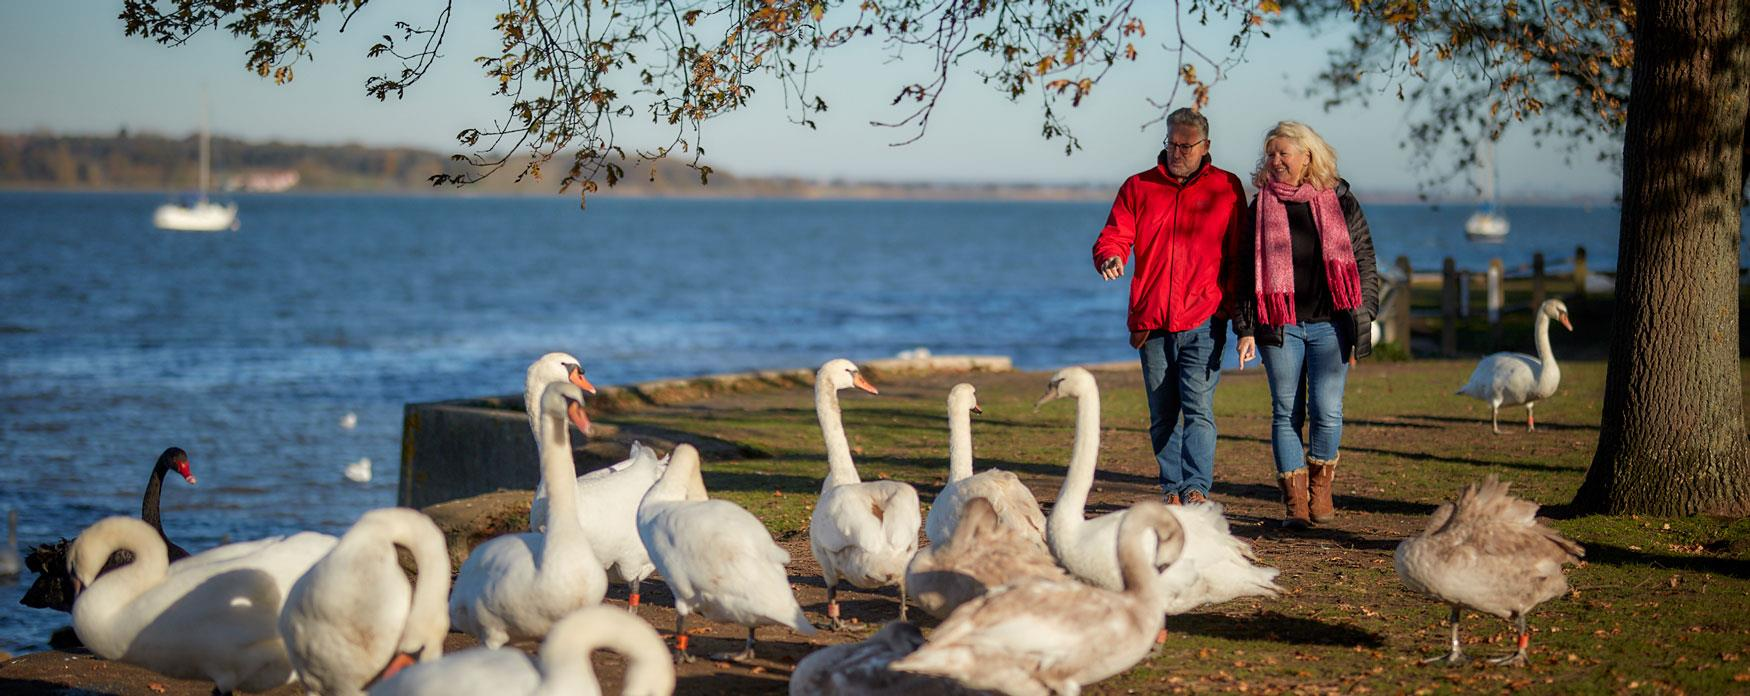 Walking with swans Manningtree